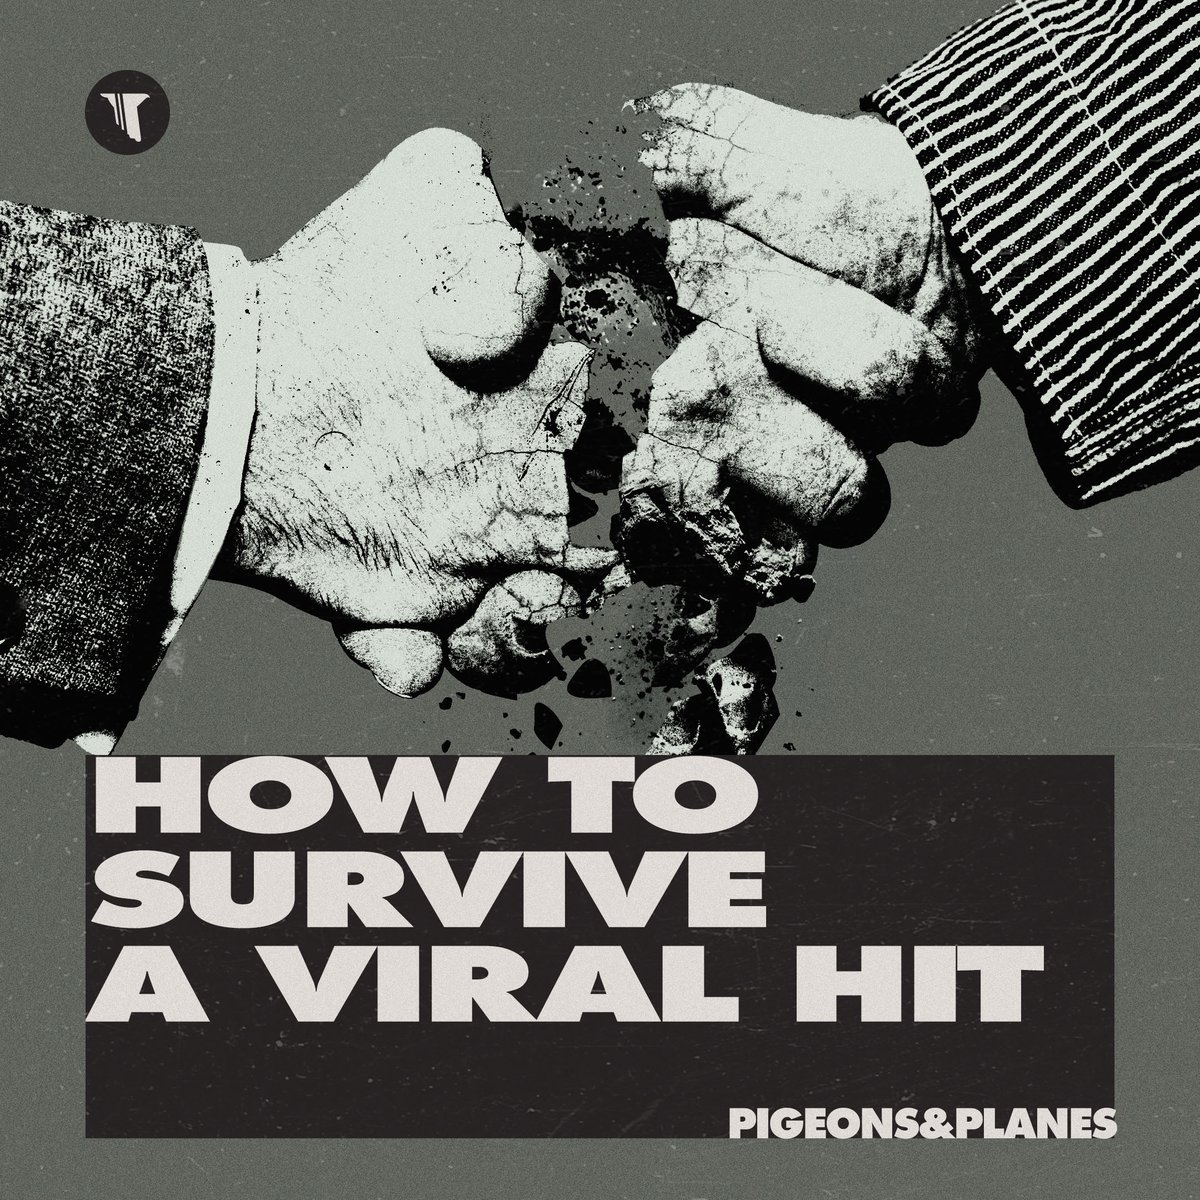 How To Survive a Viral Hit 🗒️🖊️  Having a viral hit can be a gift or a curse, just ask Kreayshawn and Trinidad James. We break down record deals with the help of some experts and explain how artists can protect themselves at a key moment in their career. https://t.co/0XJmkmeM1D https://t.co/LMu2KlYvZP